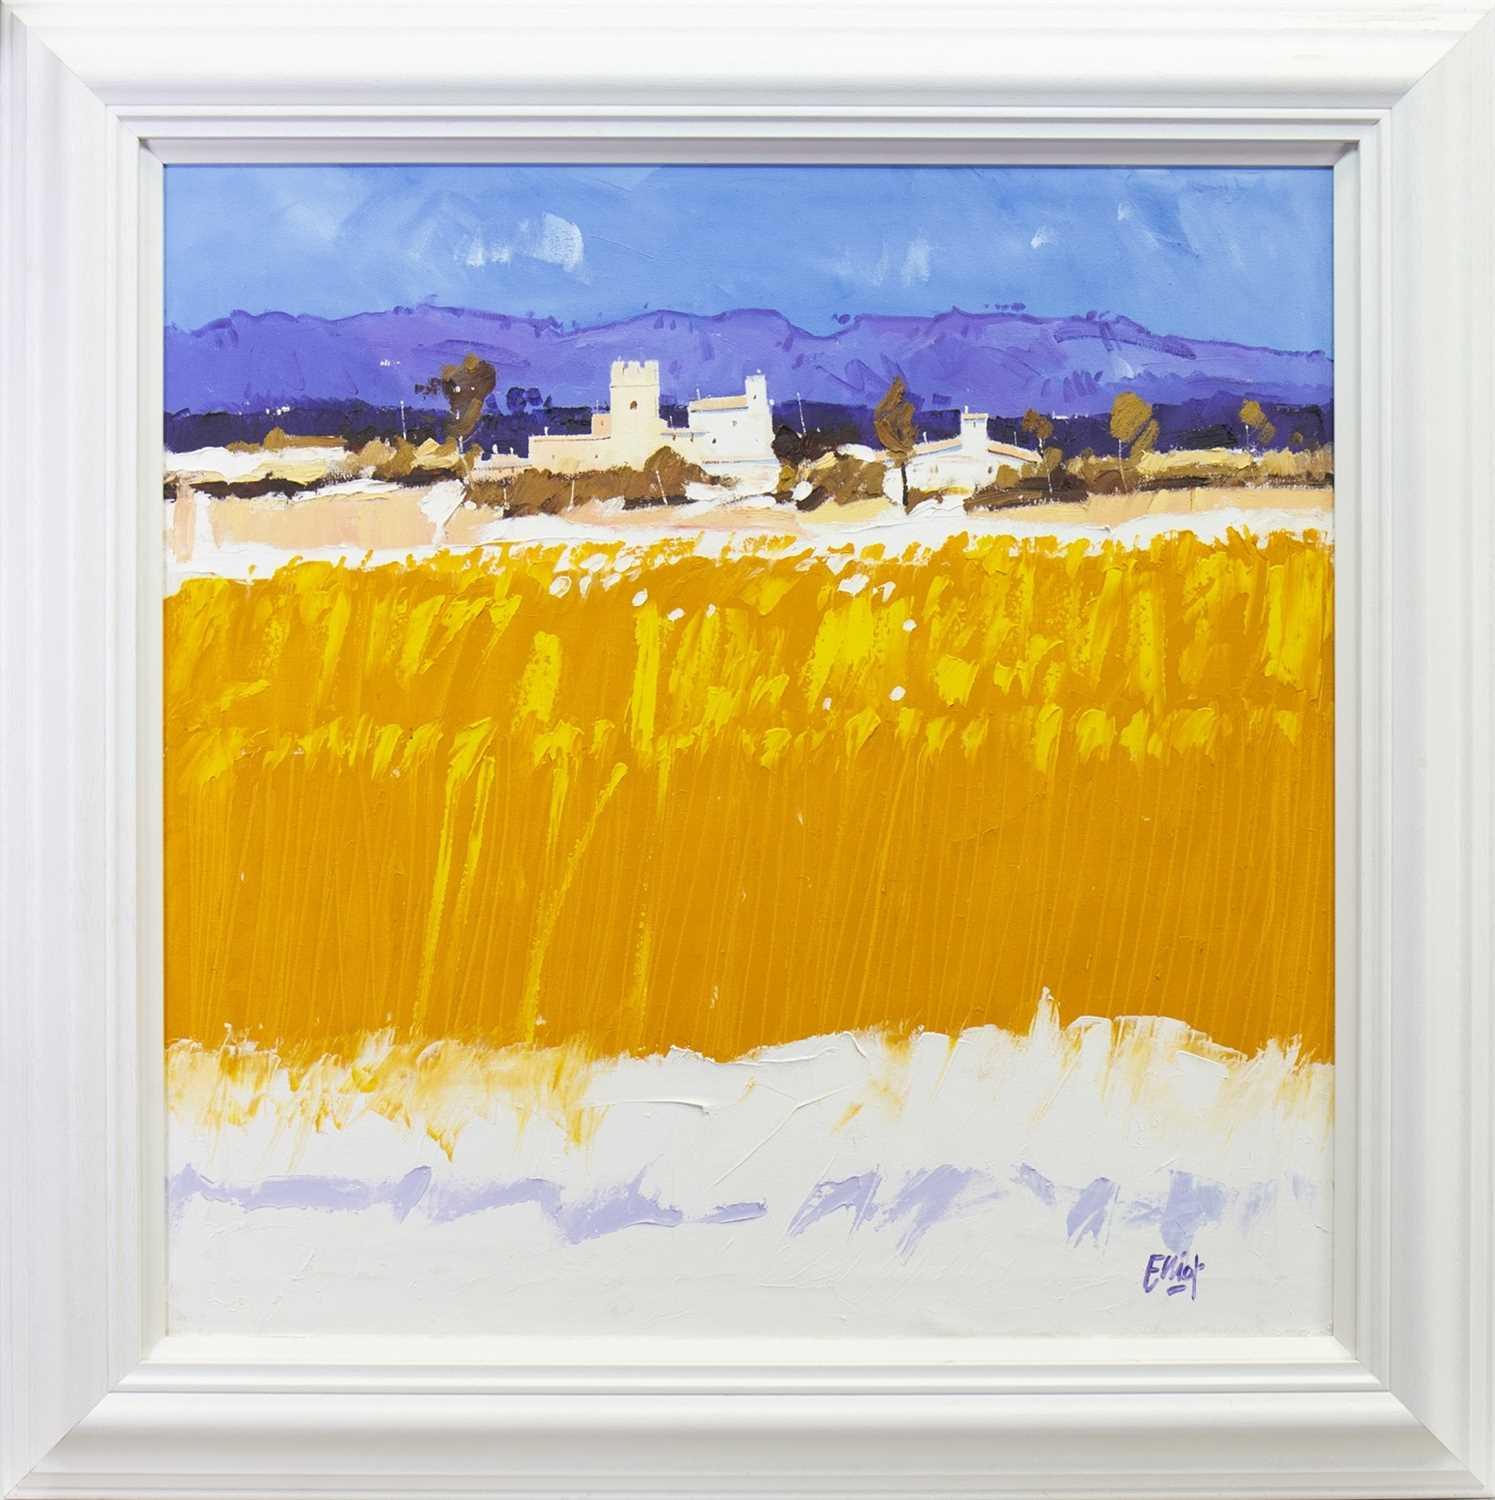 Lot 538-CAMPO DE MALLORCA, AN OIL BY IAIN SCOTT ELLIOT